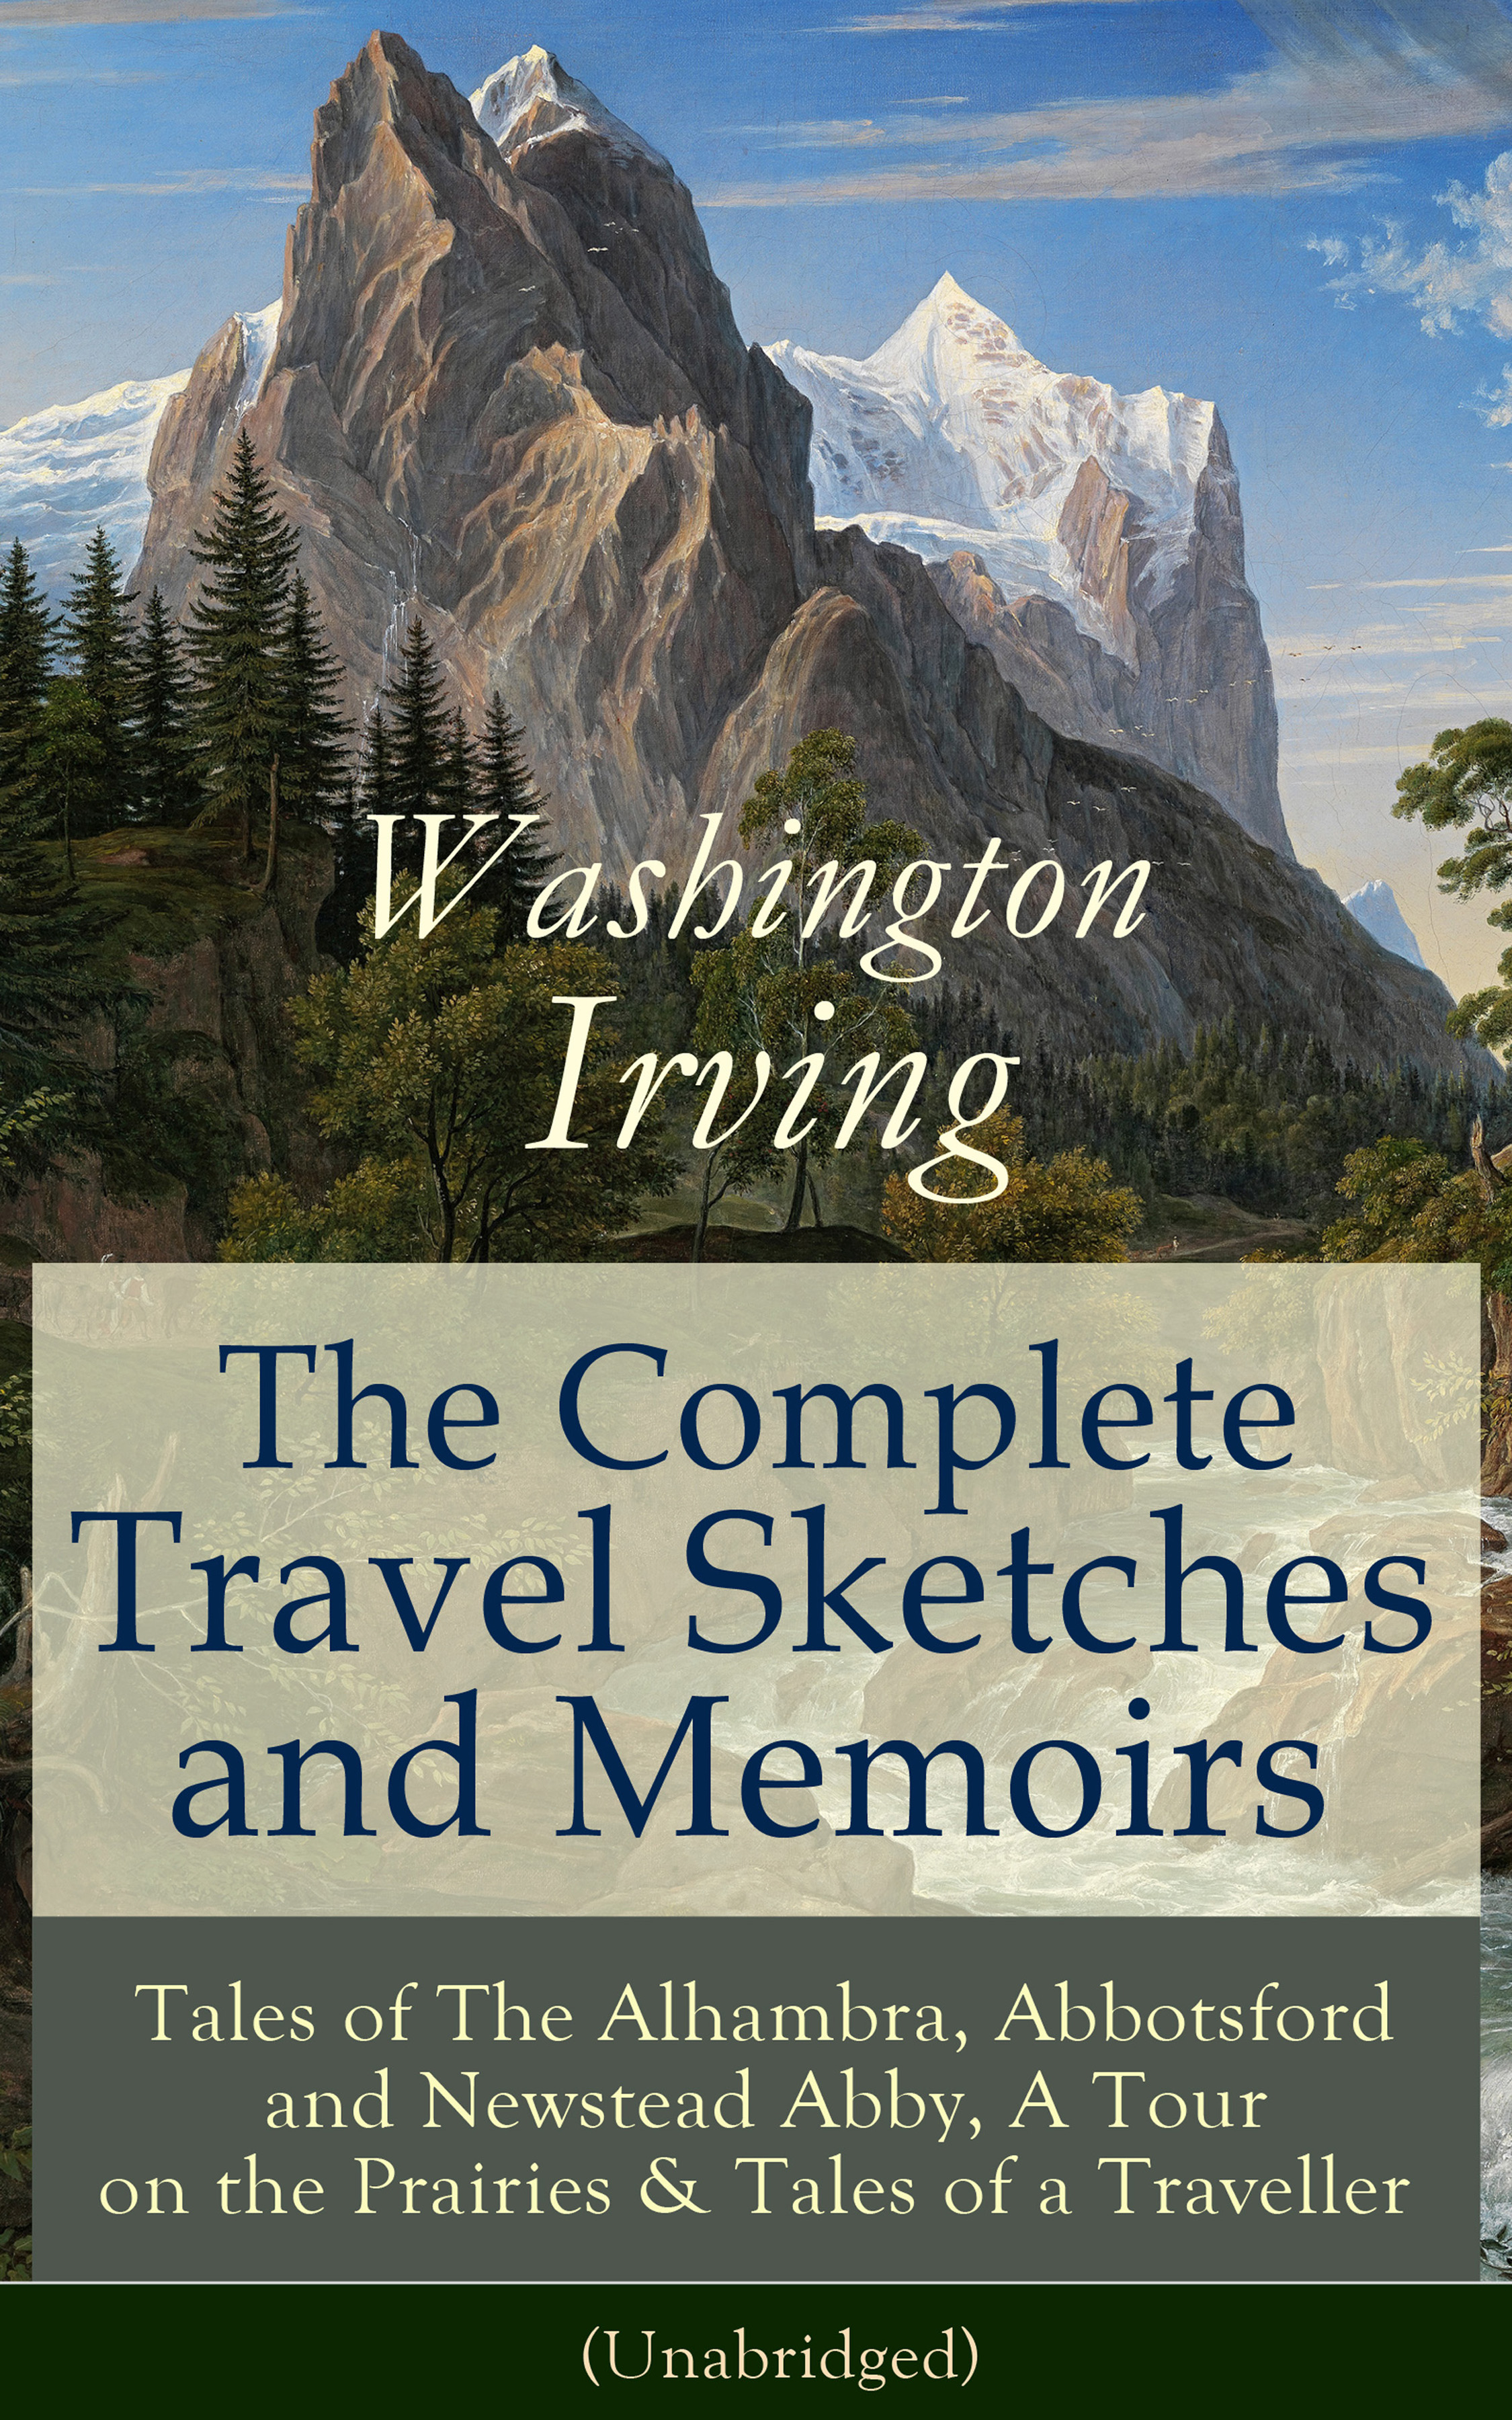 the complete travel sketches and memoirs of washington irving tales of the alhambra abbotsford and newstead abby a tour on the prairies tales of a tra